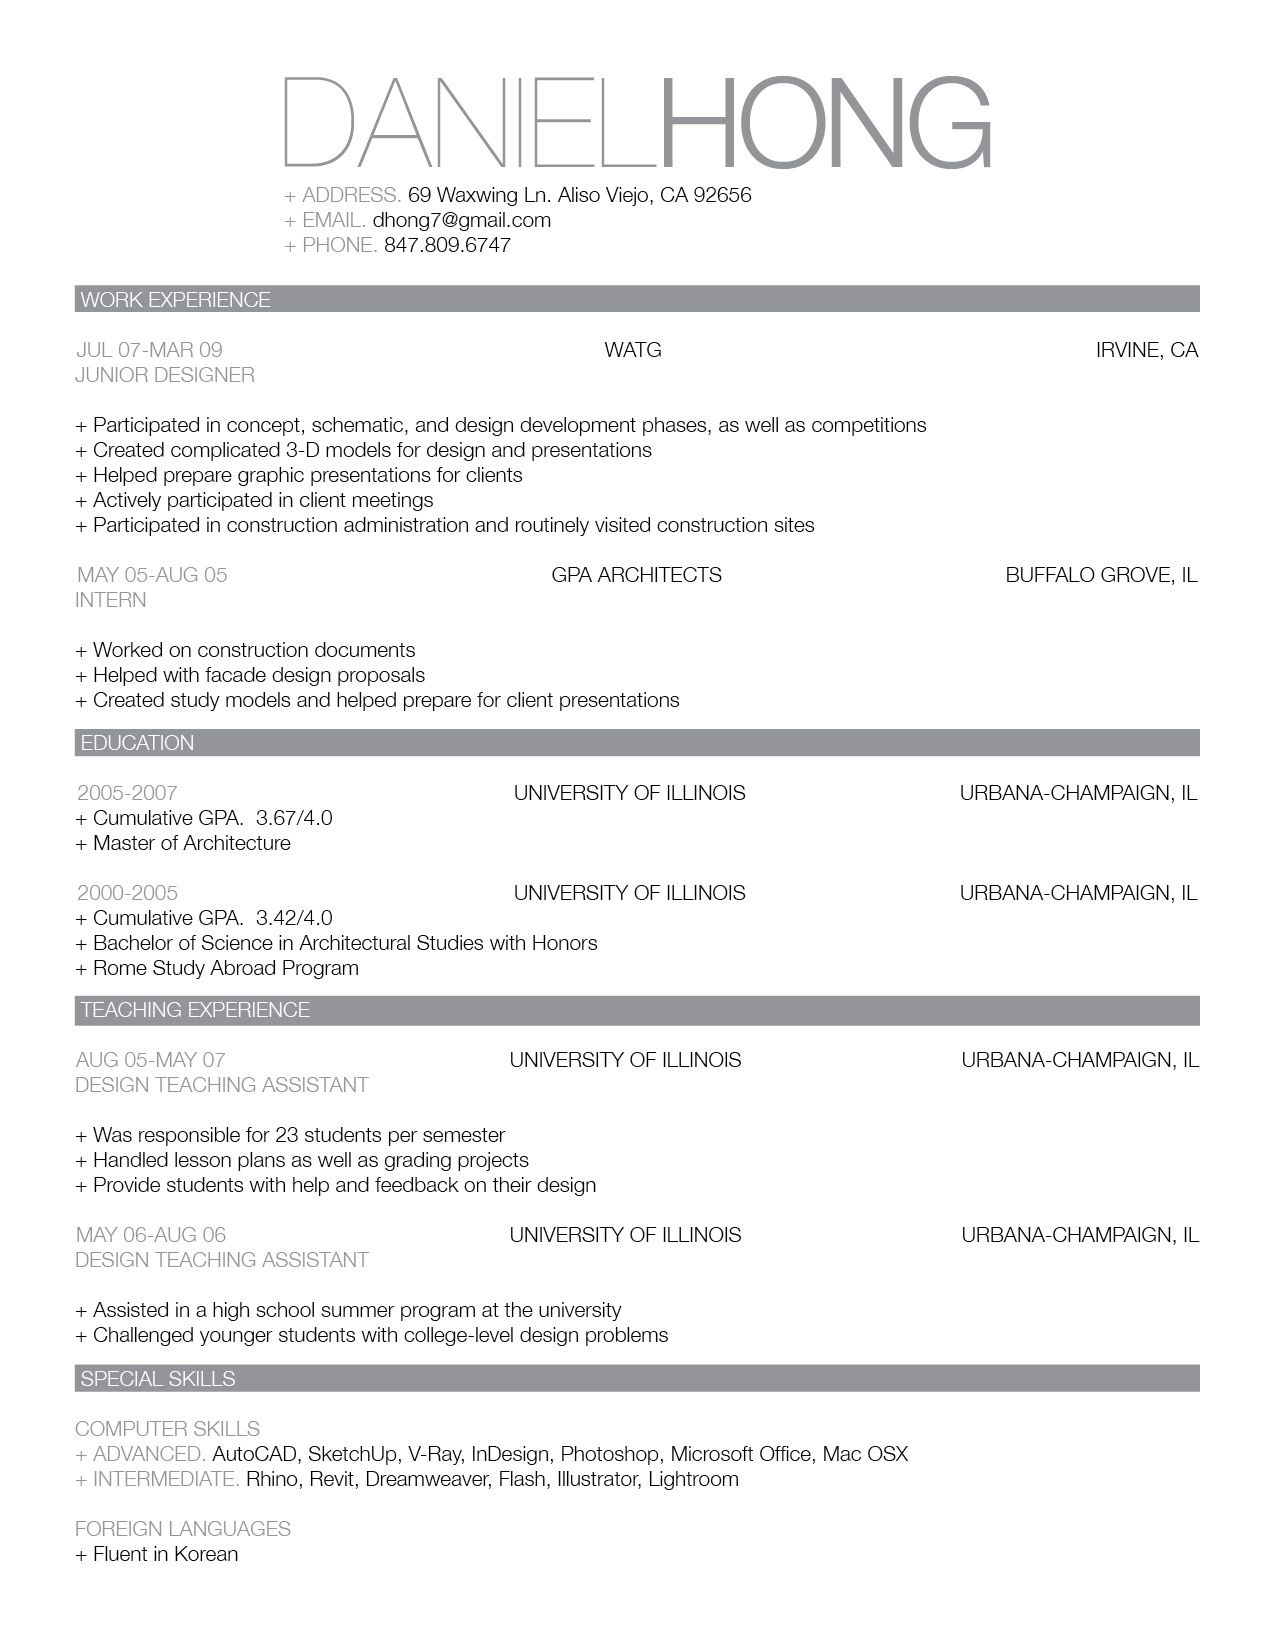 Example Of A Professional Resume Updated Cv And Work Sample  Professional Resume Sample Resume